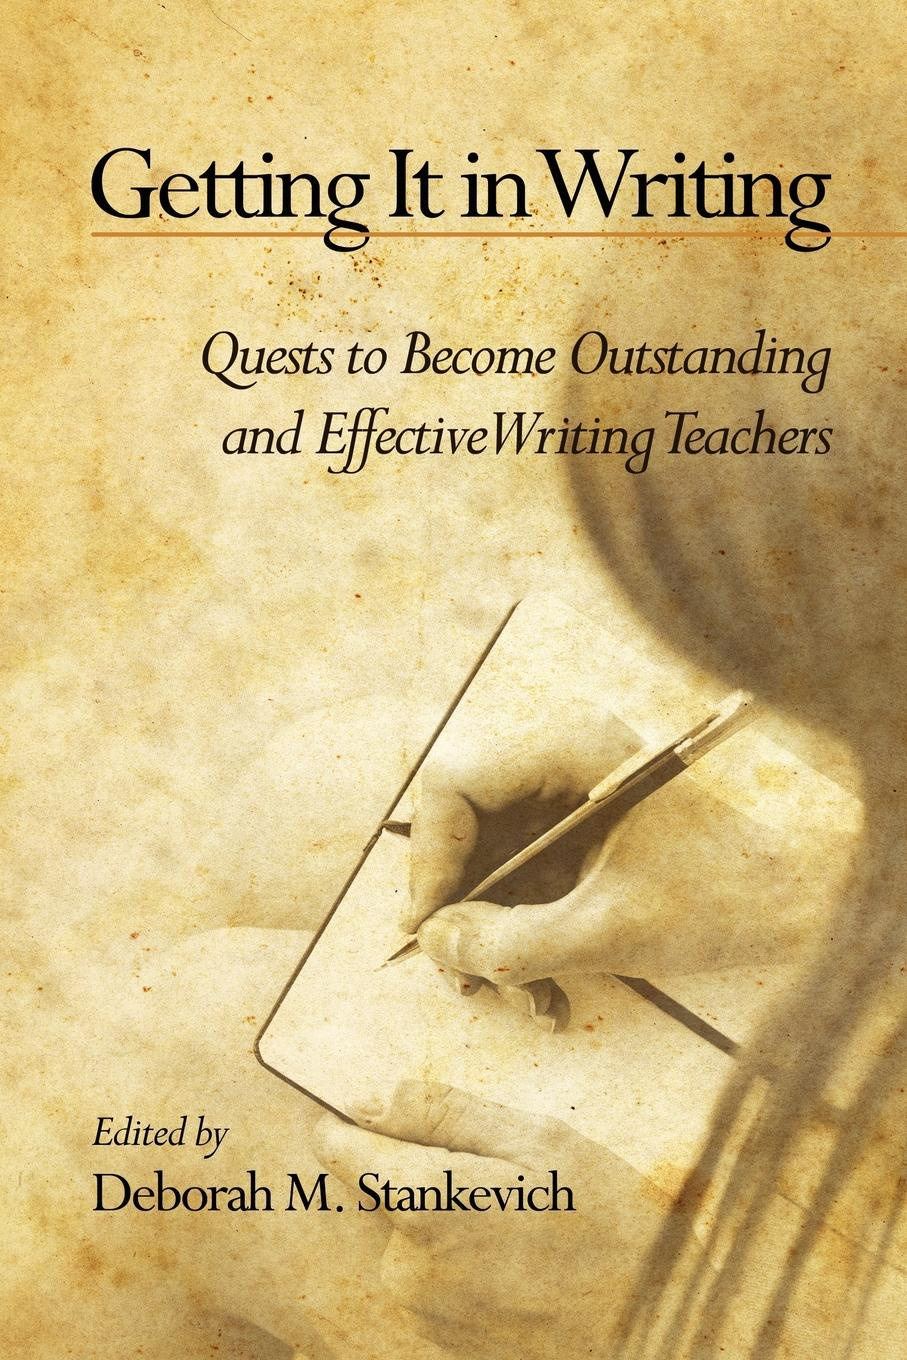 Getting It in Writing. The Quest to Become Outstanding and Effective Teachers of Writing andy hewitt construction claims and responses effective writing and presentation